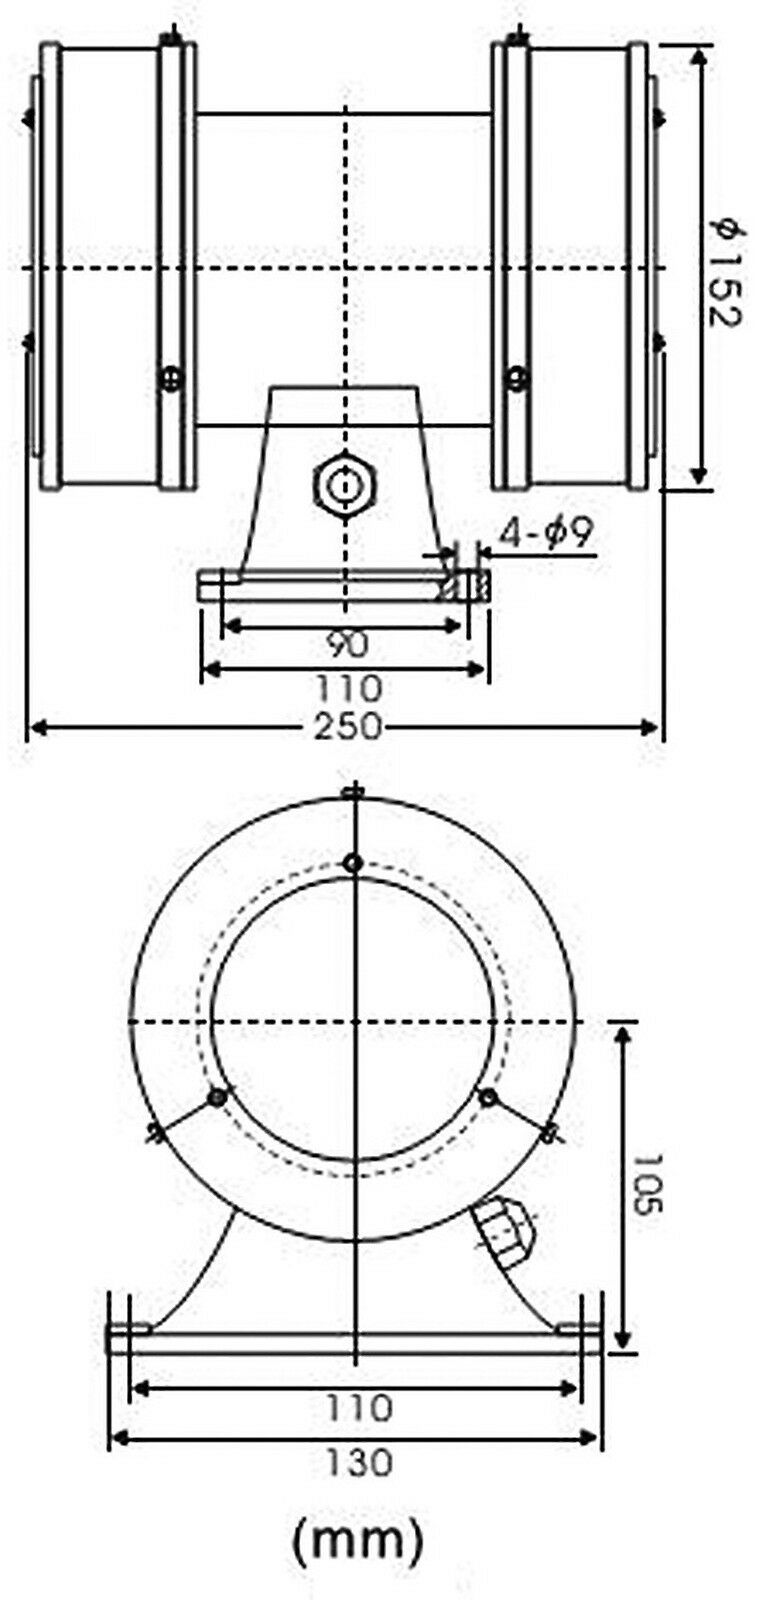 atw coil pack wiring diagram